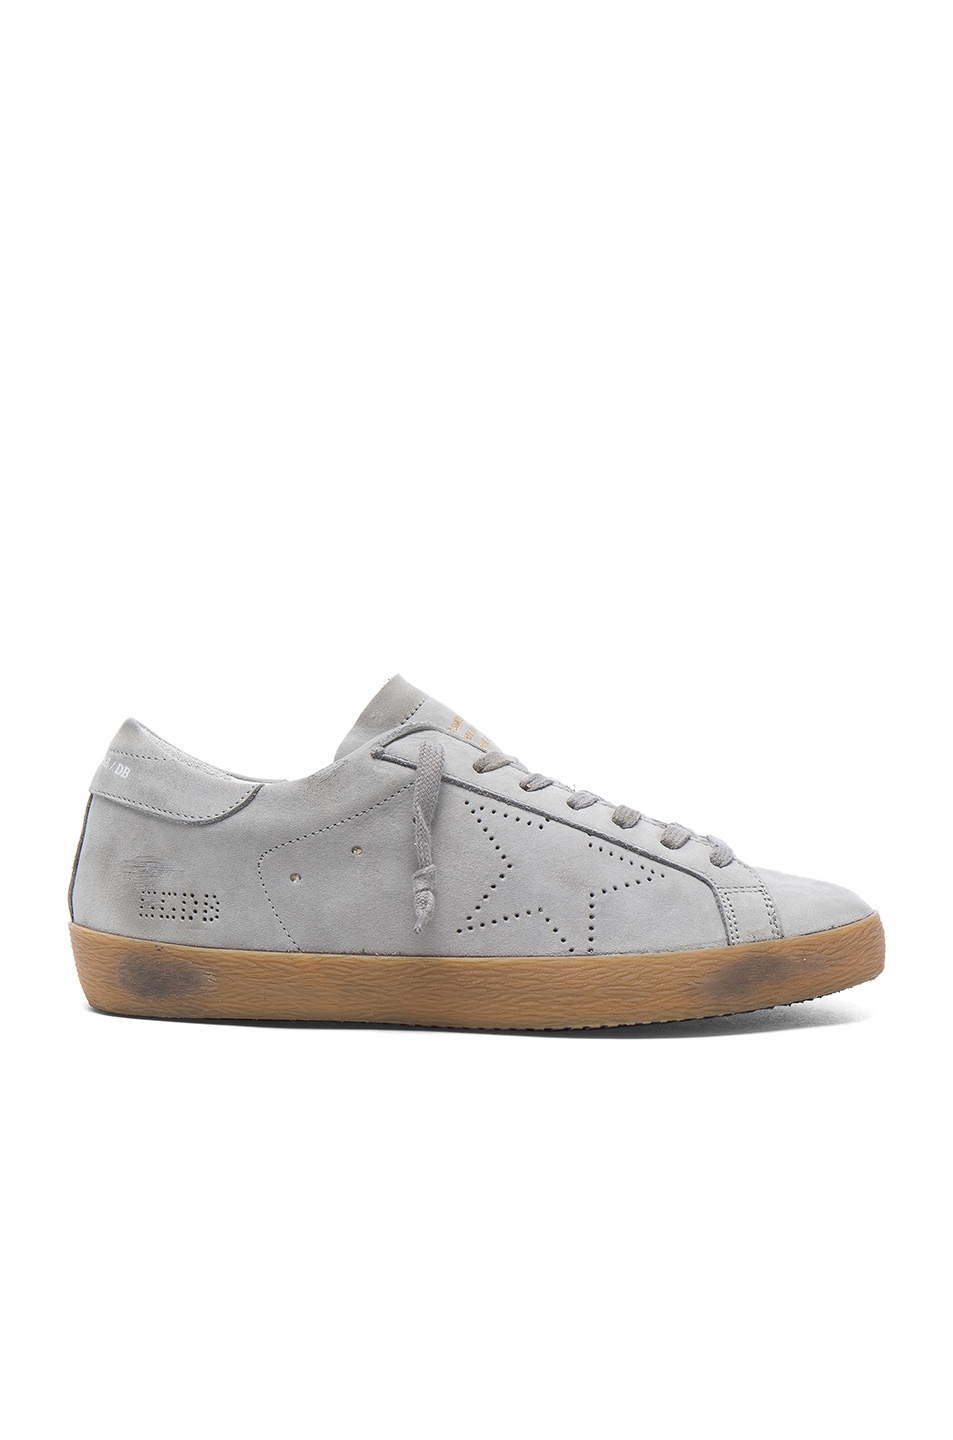 White and Grey Perforated Skate Superstar Sneakers Golden Goose Free Shipping Best Place Looking For Cheap Price Cheap 100% Authentic Sale Explore LwKD0bvsO